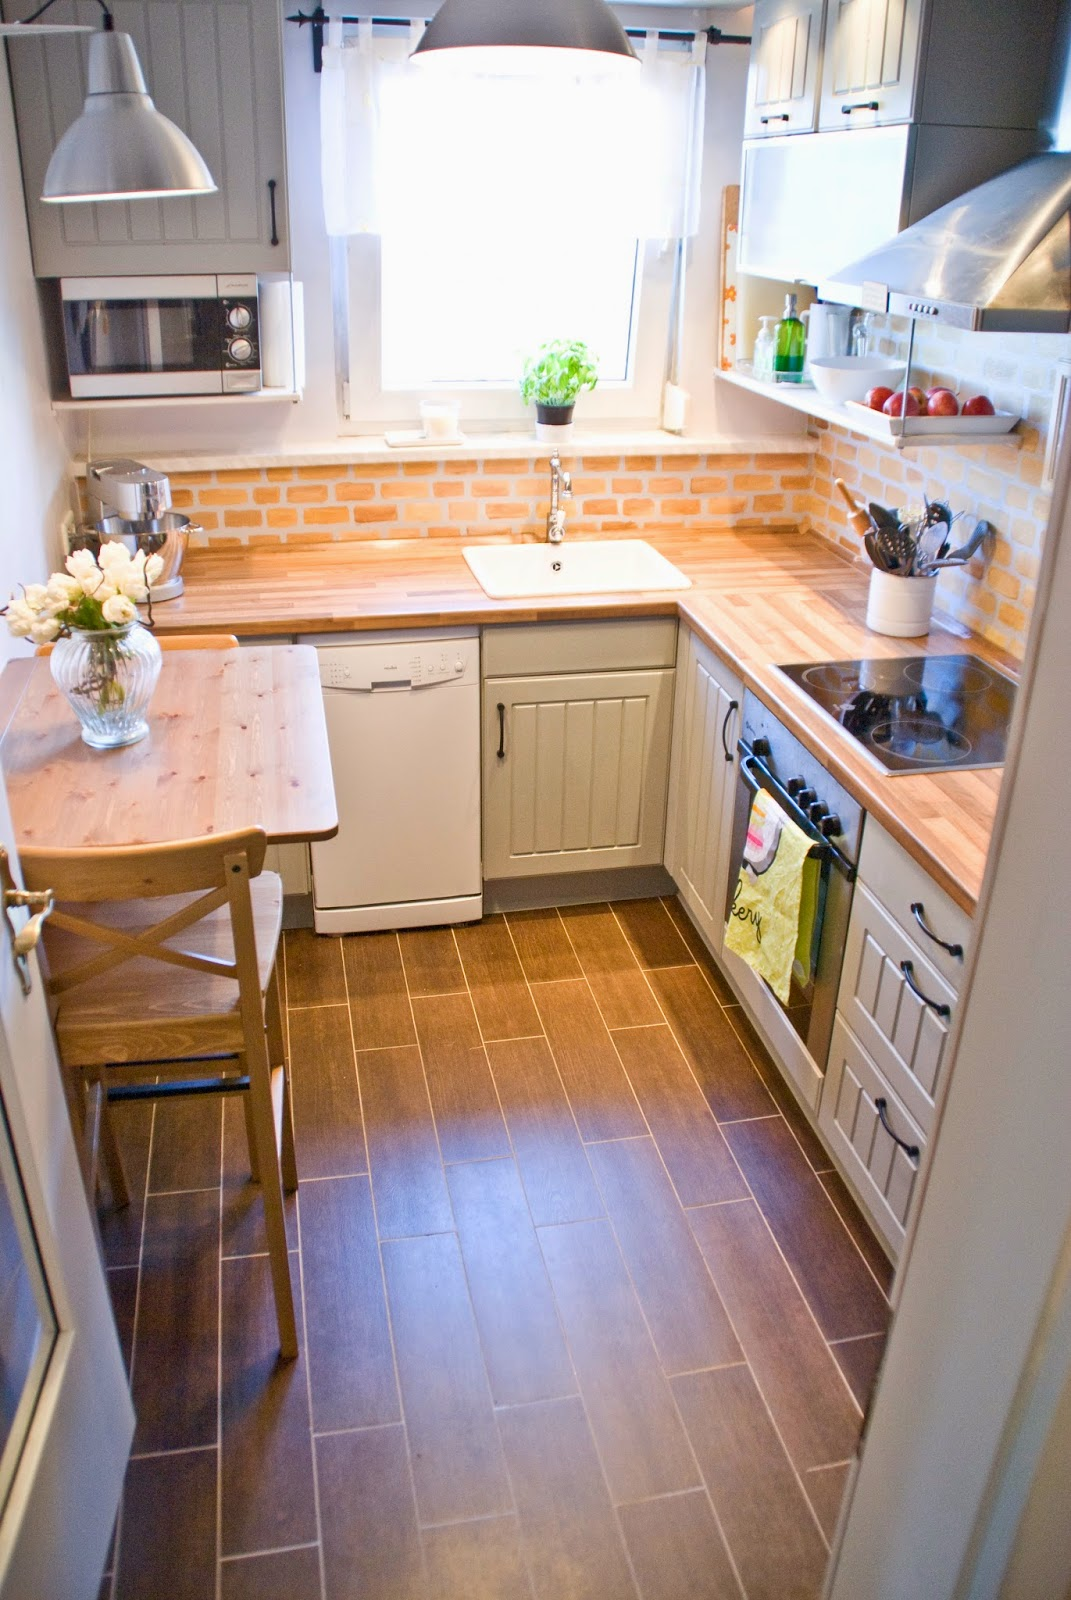 Genial Small Kitchen With Wood Butcherblock Countertops   Pudel Design Featured On  @Remodelaholic